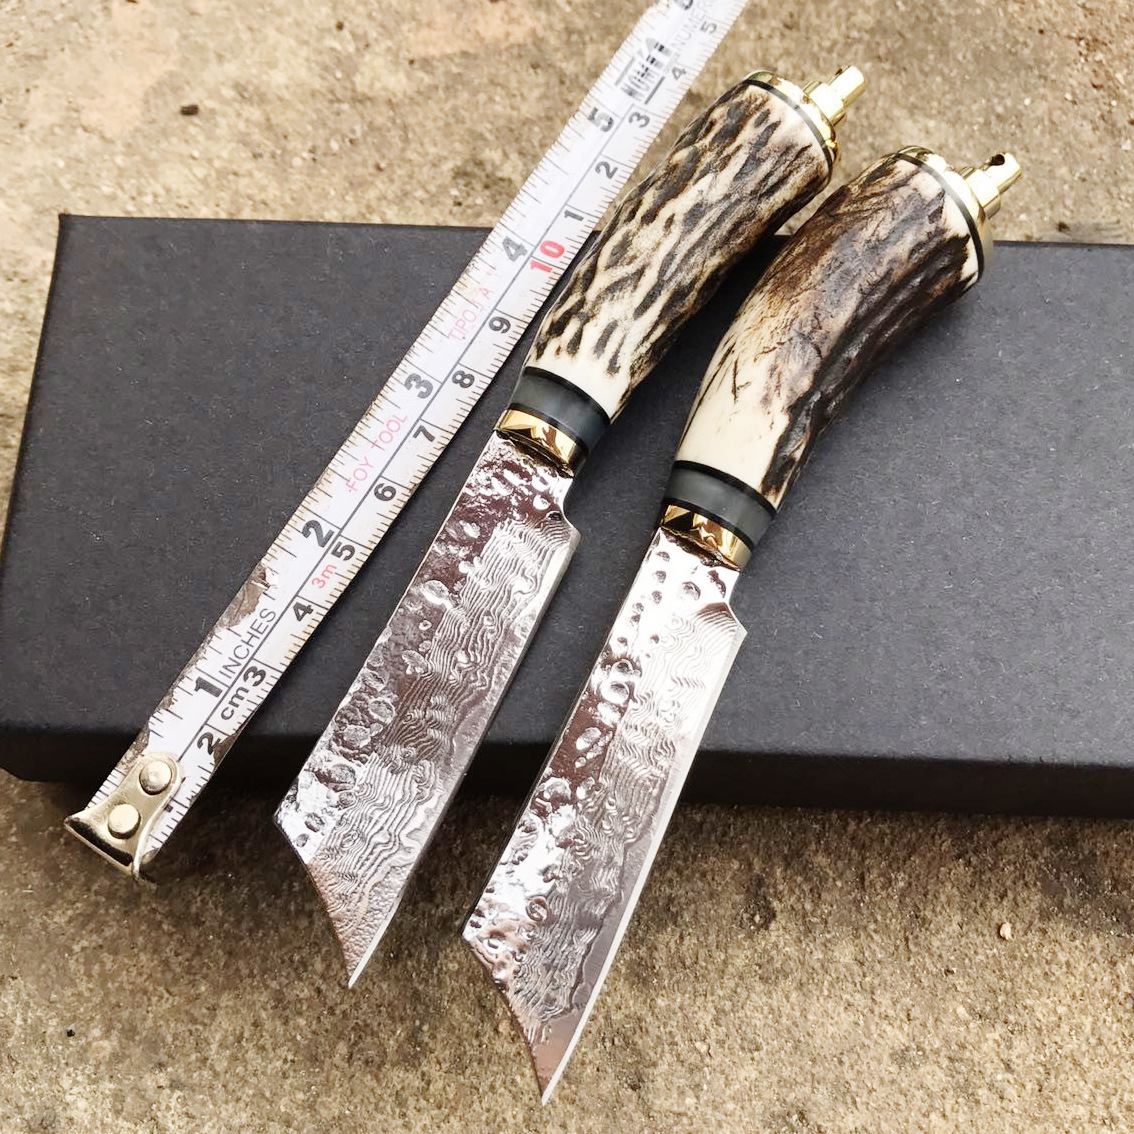 Damascus steel army Survival knife high hardness wilderness knive essential self-defense Camping Knife Hunting outdoor tools EDC stenzhorn survival knife new rushed navajas 2017 s35vn knife bearing folding with a blade with high hardness in the wilderness